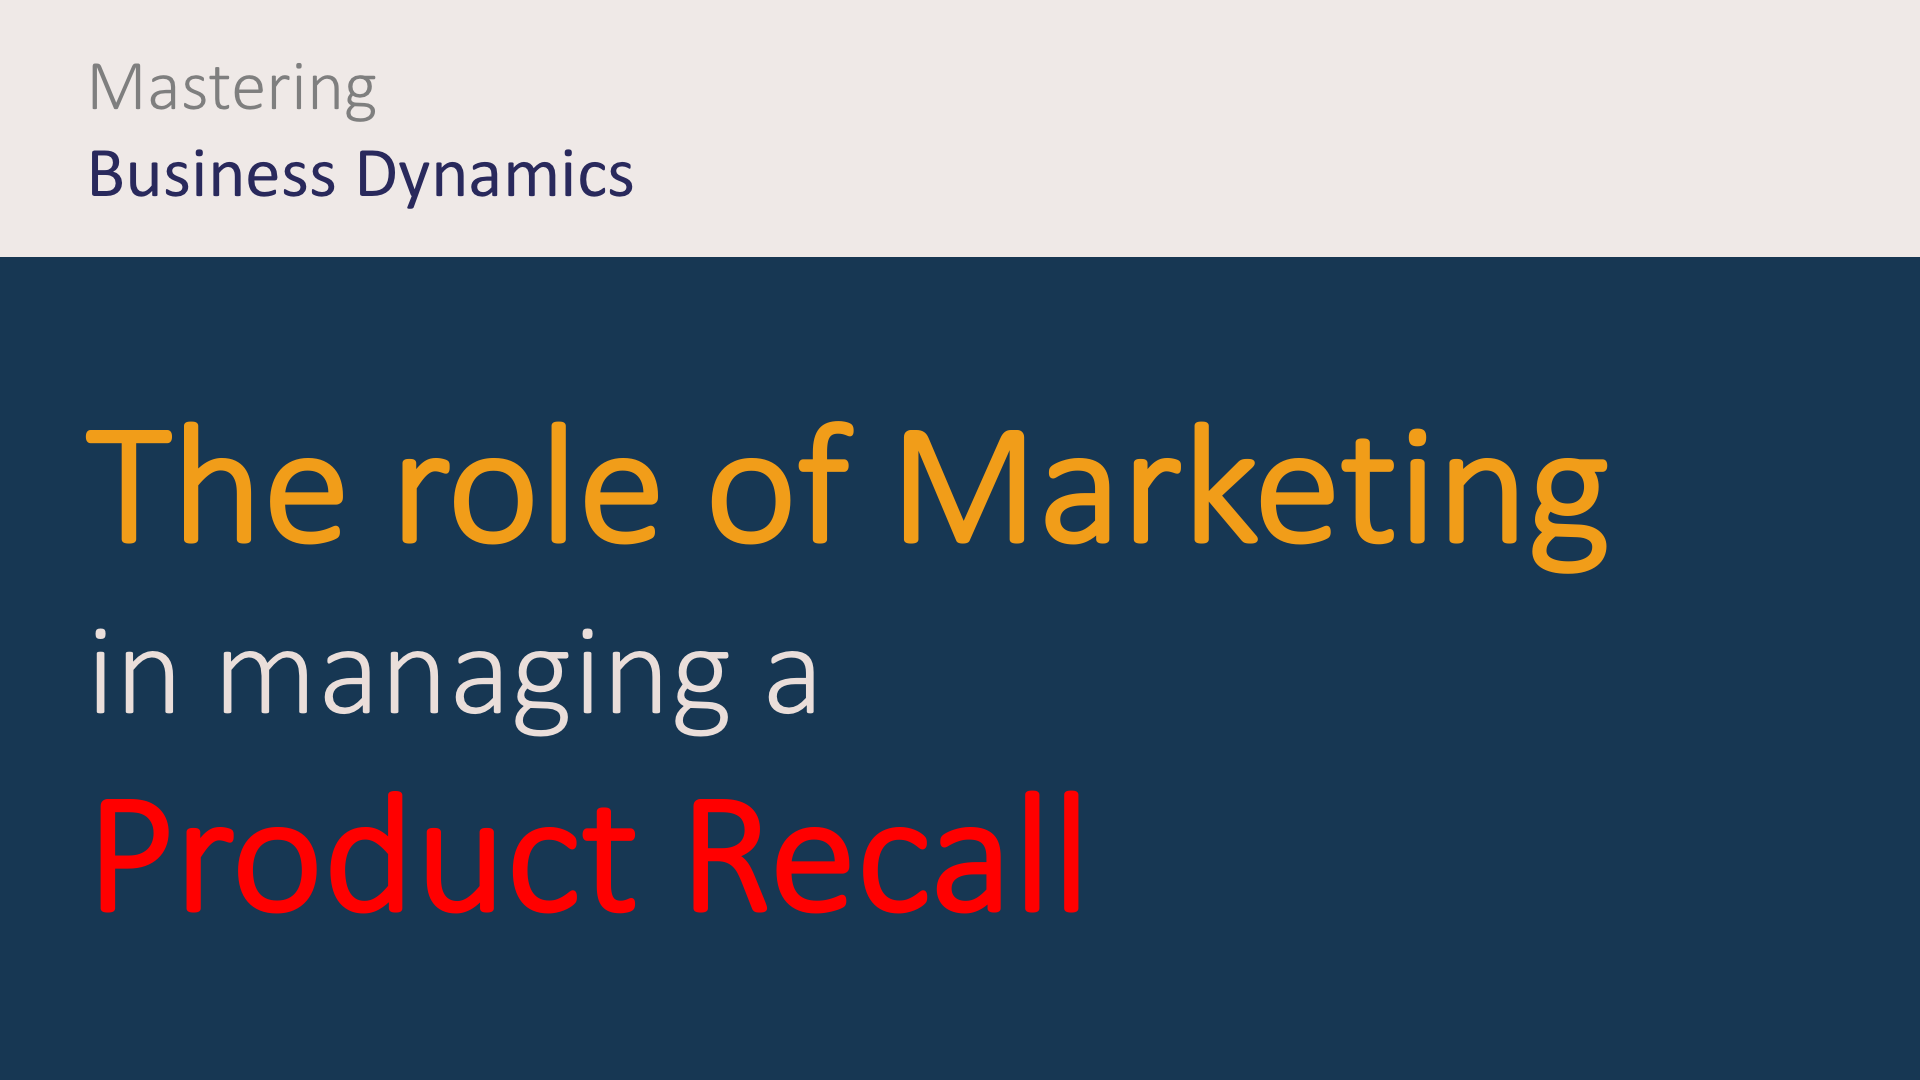 What is the role of marketing and communication in a product recall crisis?